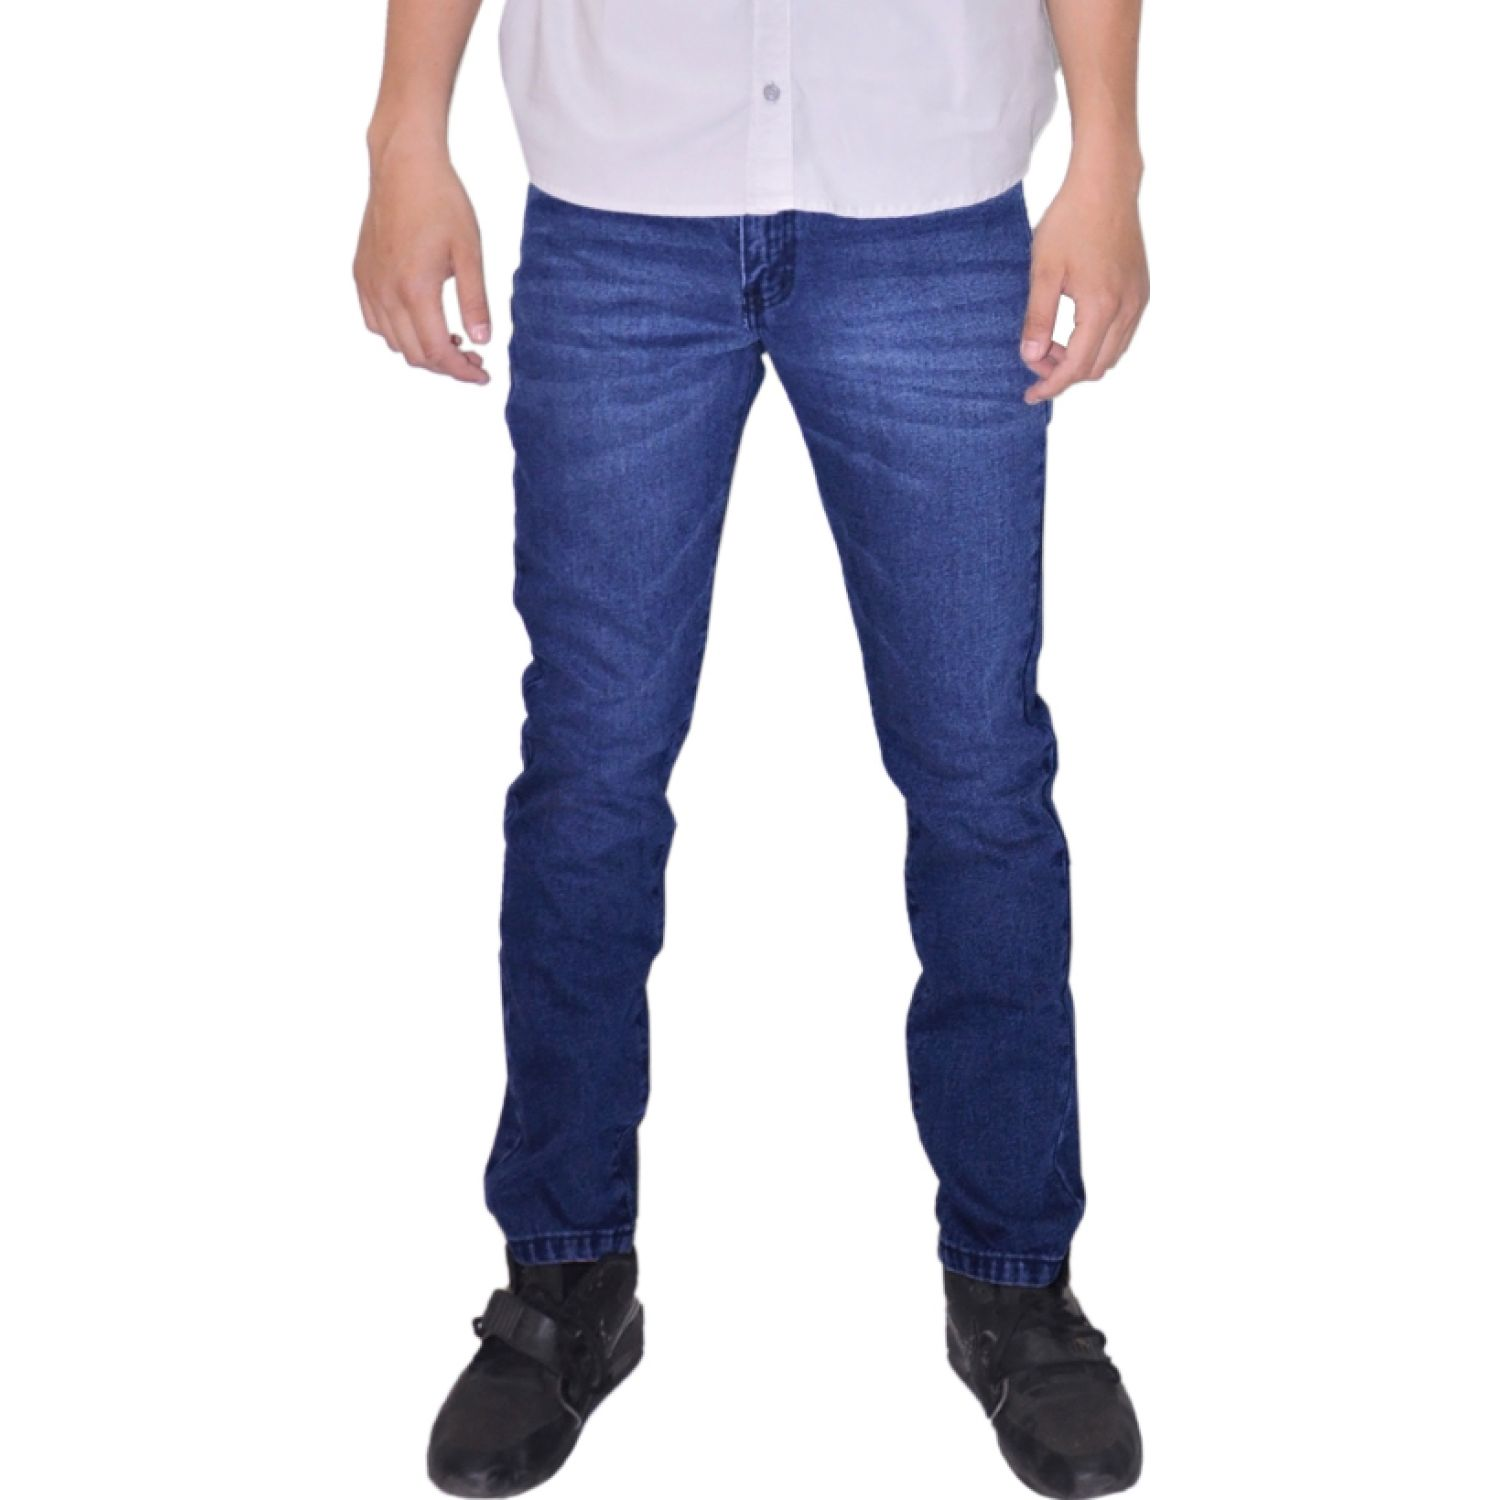 COTTONS JEANS Adonis Azul Casual